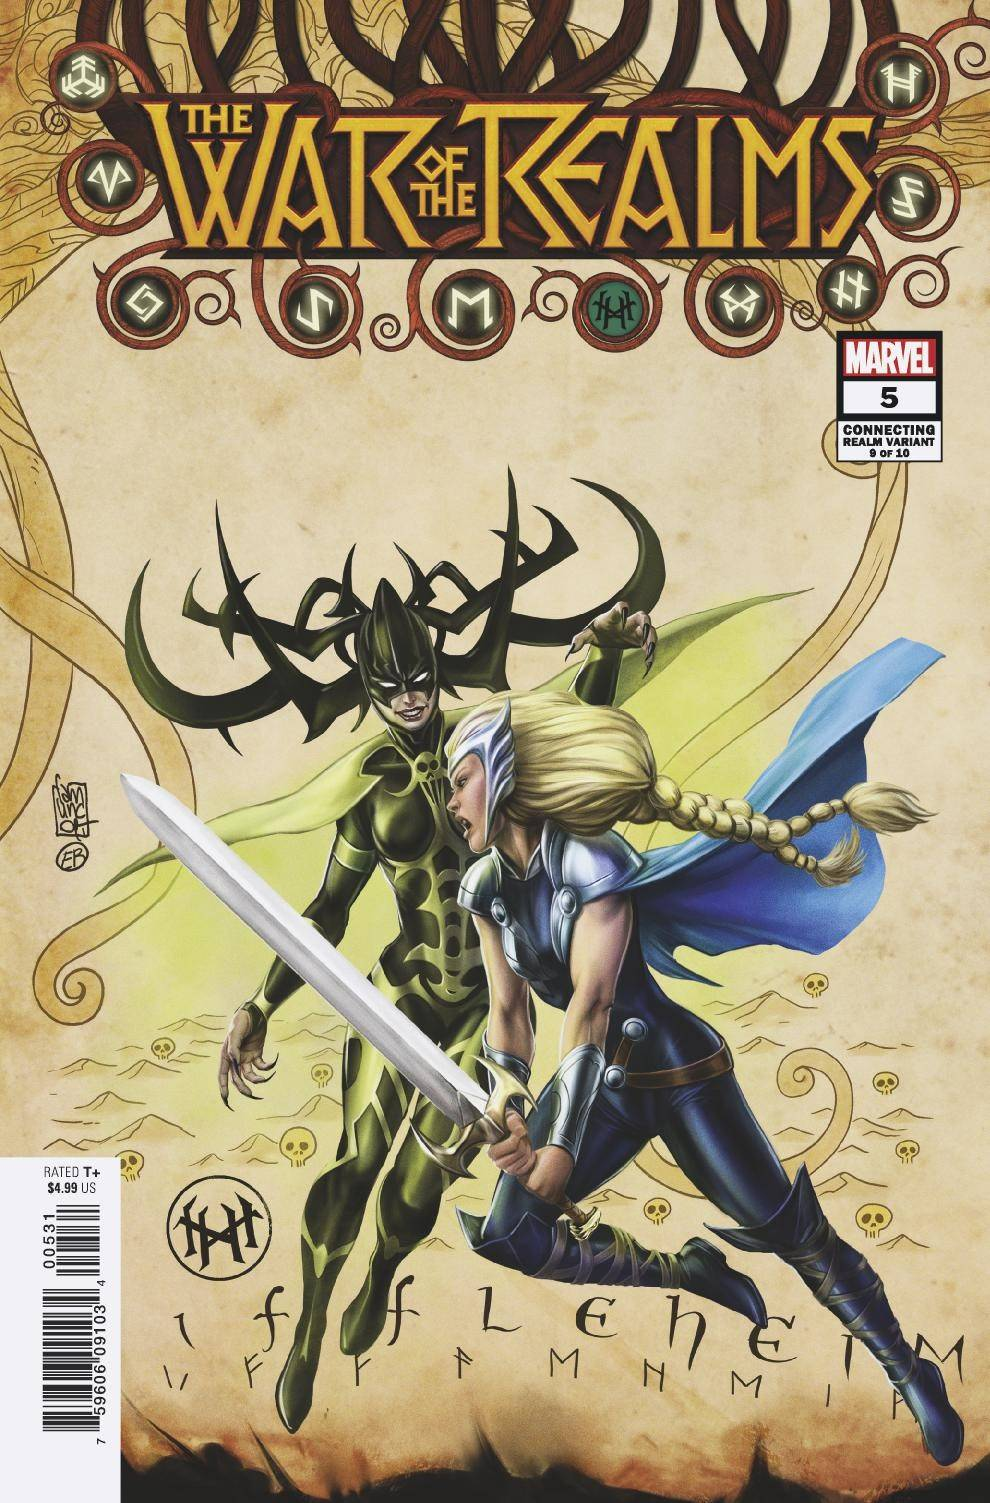 WAR OF REALMS 5 of 6 CAMUNCOLI CONNECTING REALM VAR.jpg